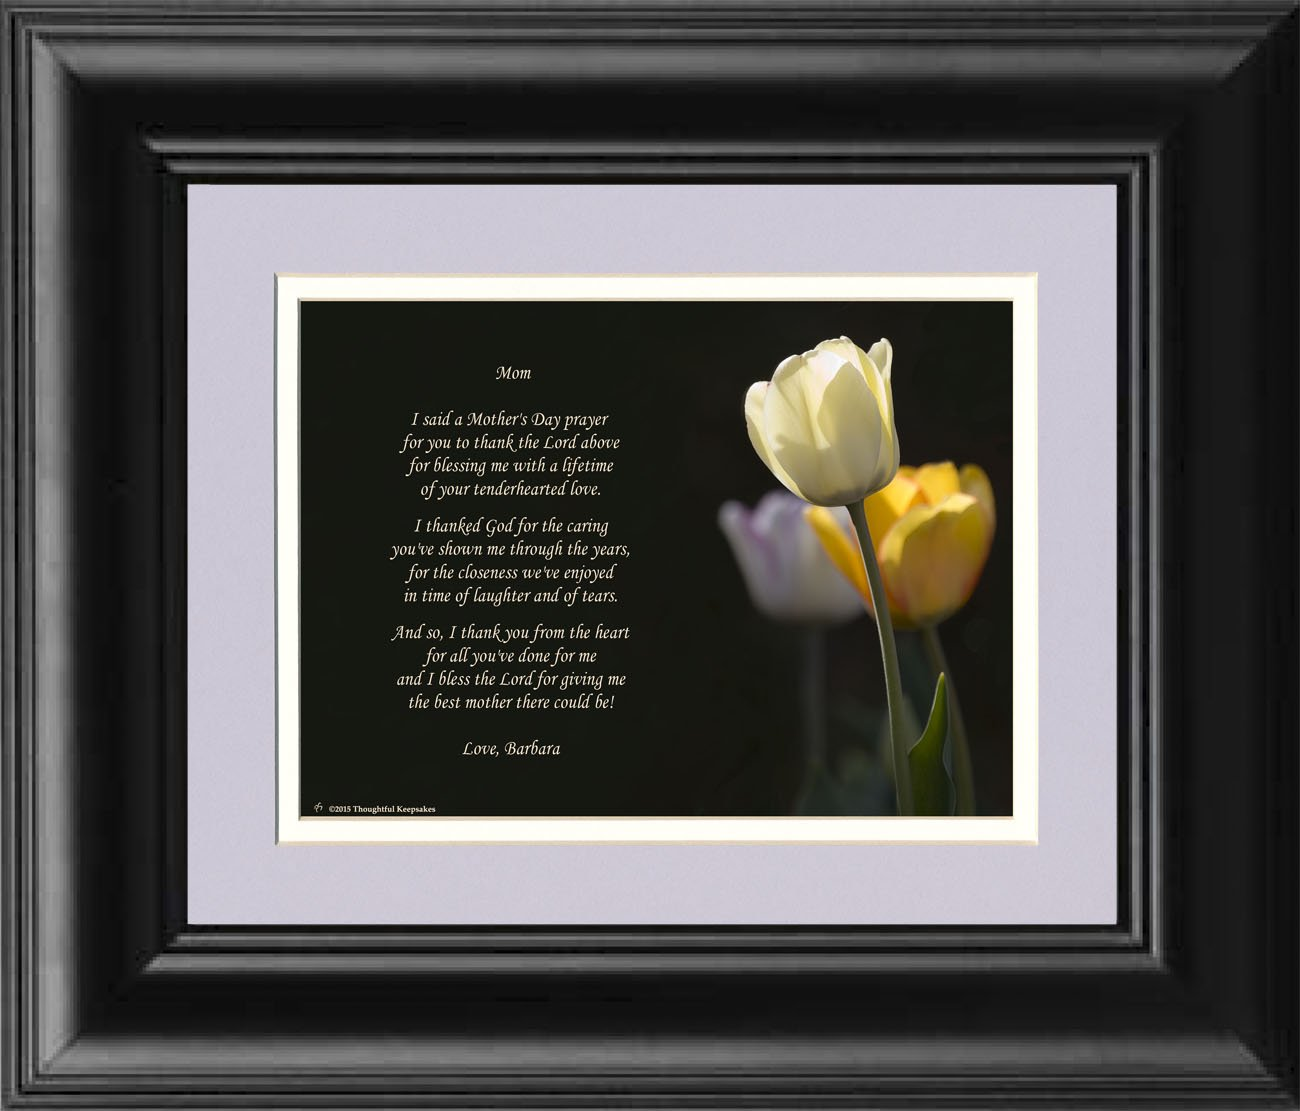 Special Gifts For Mom Part - 30: Amazon.com: Framed Personalized Mothers Day Gift, With Mothers Day Prayer  Poem. White Tulip Photo, 8x10 Double Matted. Special Mothers Day Gift For  Mom.